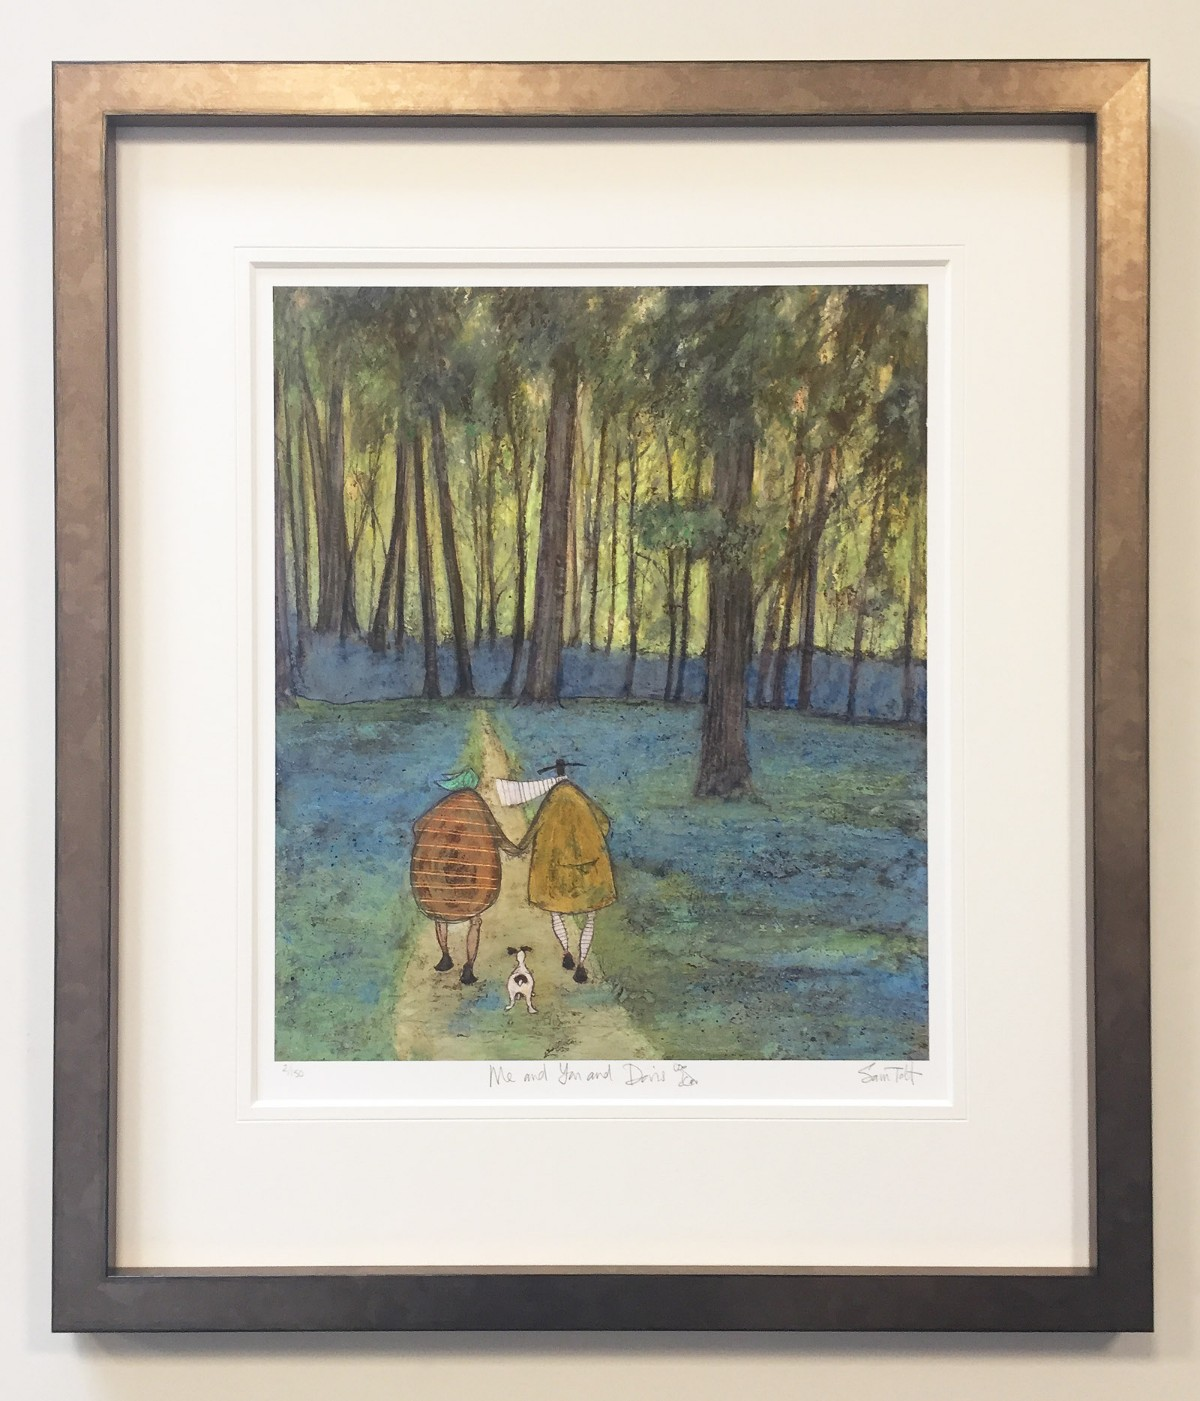 You and Me and Doris 2/150 (Remarque) by Sam Toft